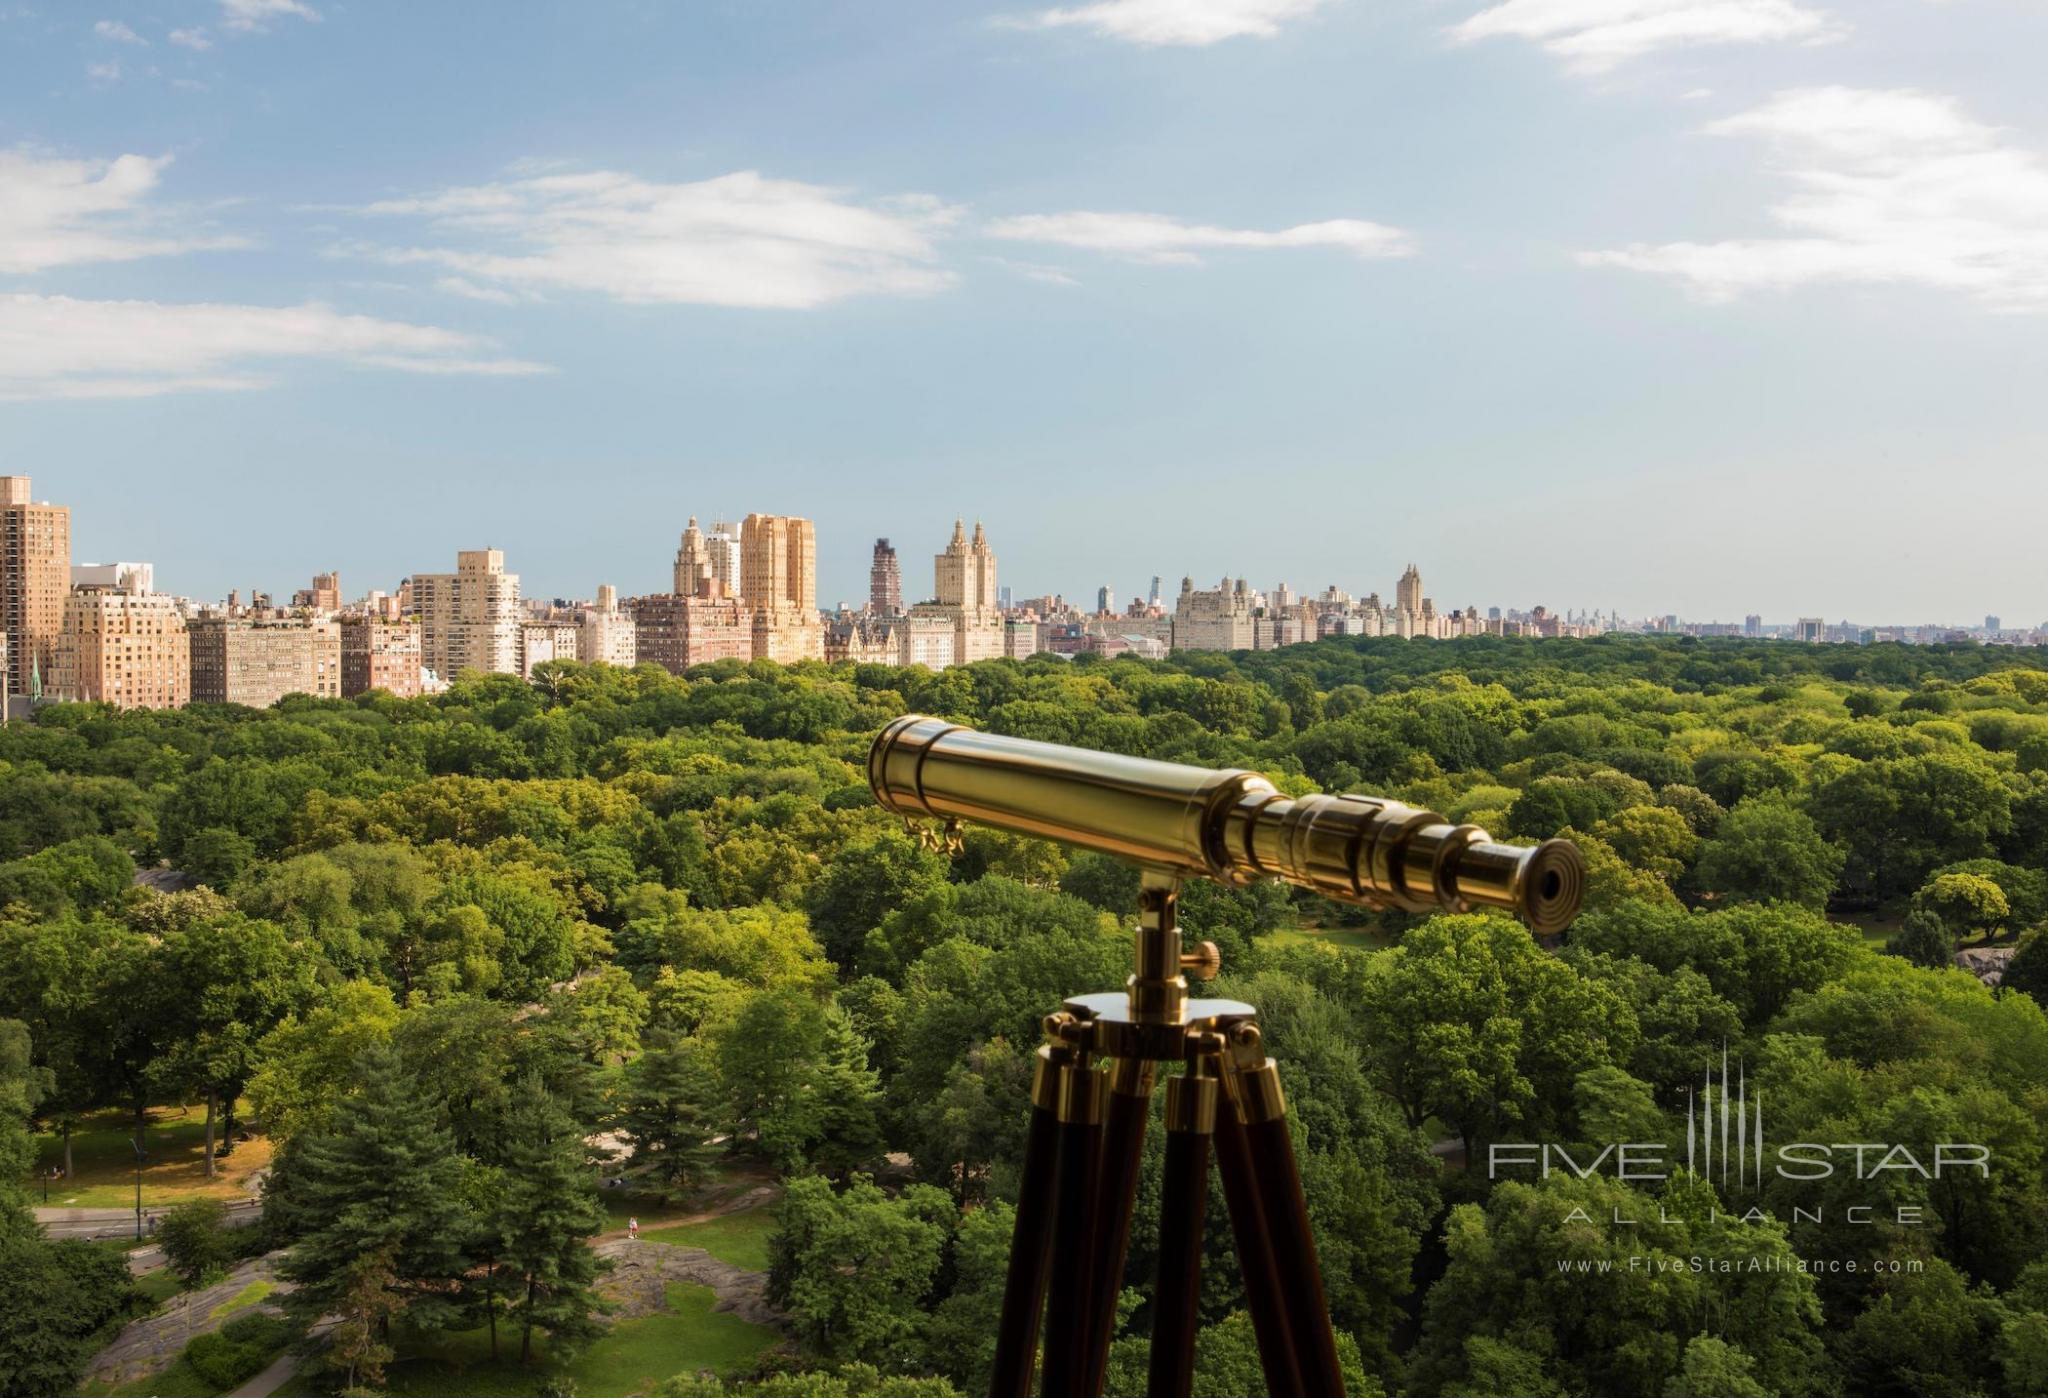 The Ritz-Carlton New York Central Park telescope view of Central Park